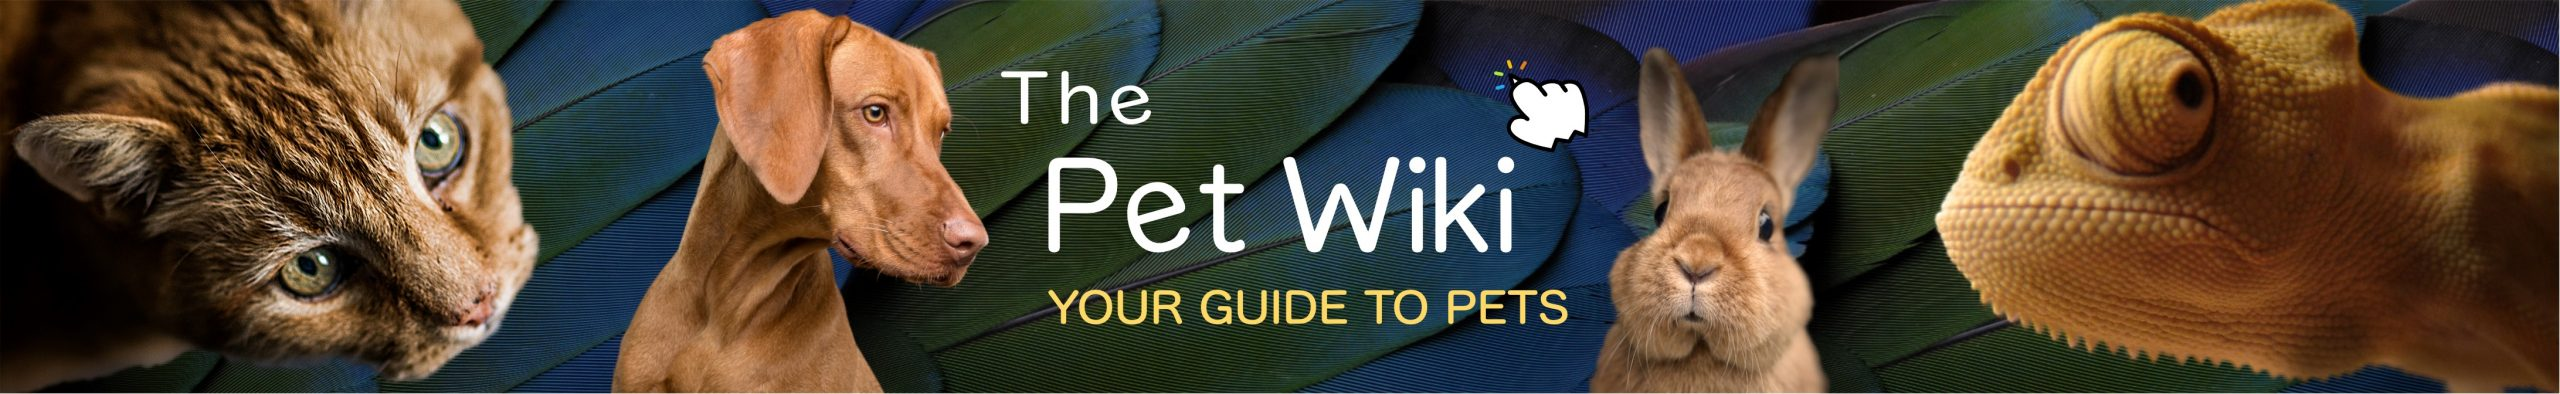 The Pet Wiki